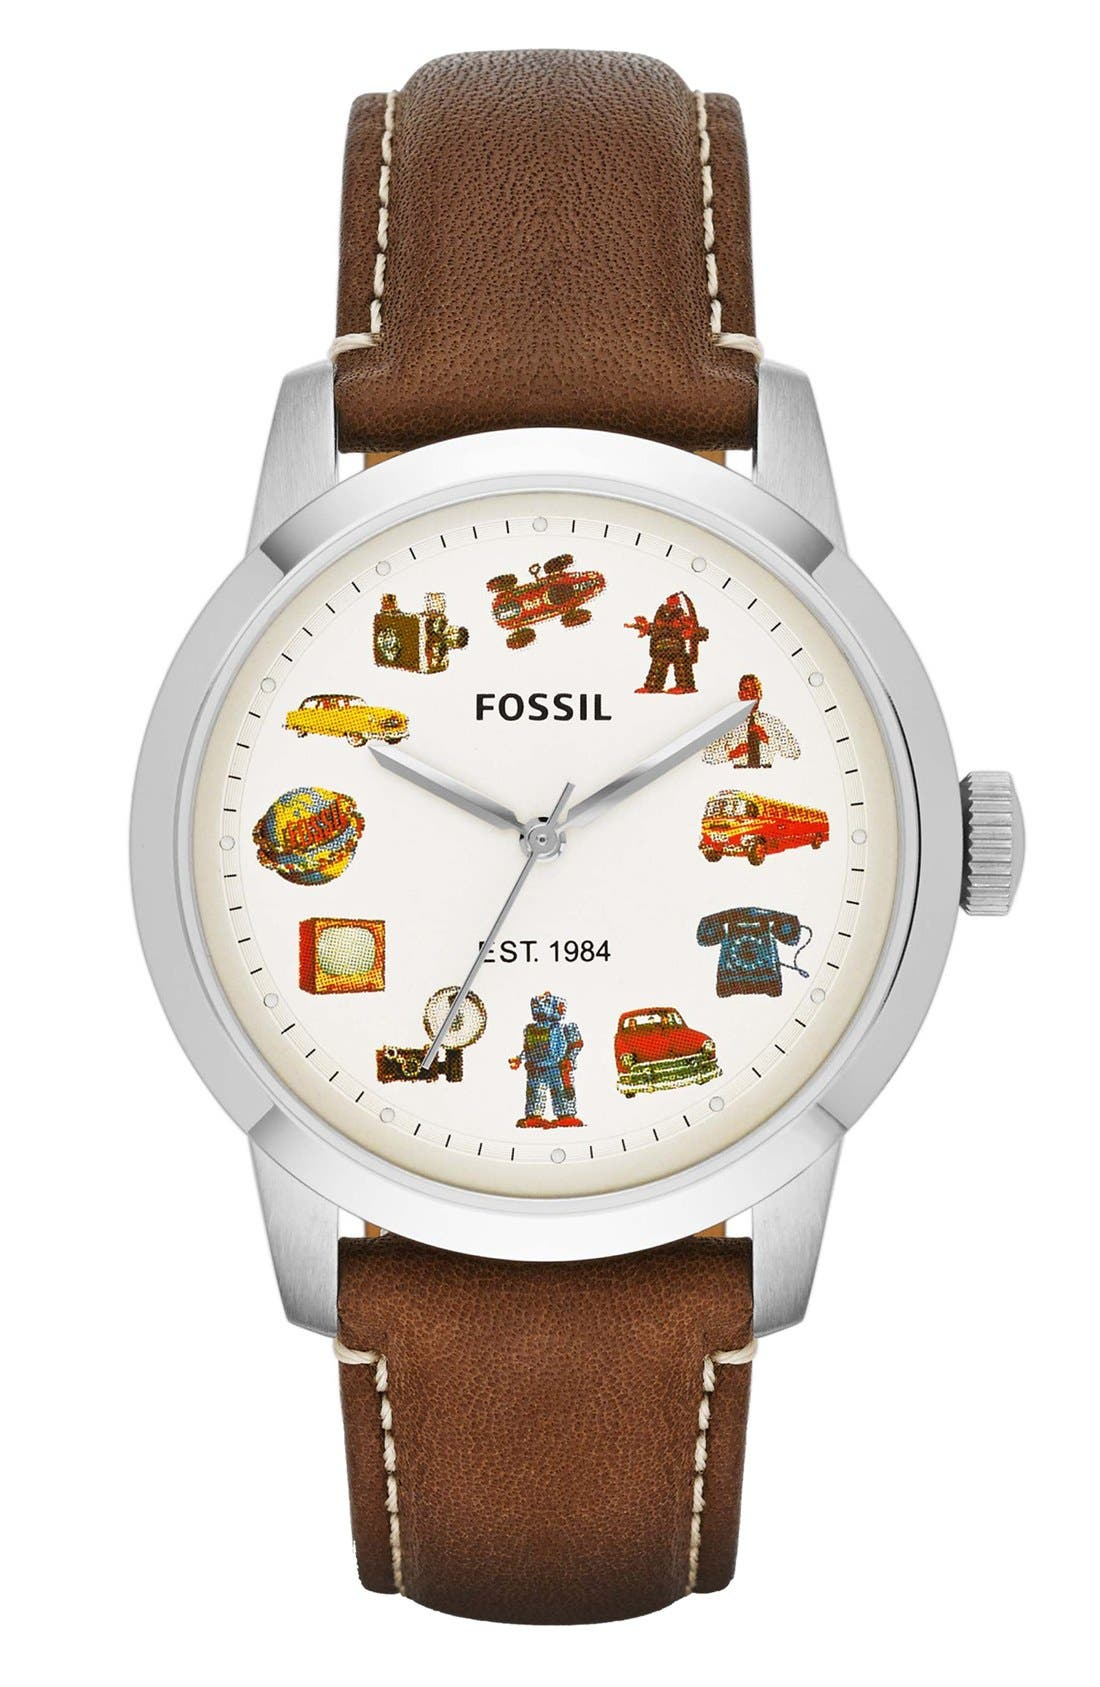 Alternate Image 1 Selected - Fossil 'Townsman' Graphic Index Leather Strap Watch, 40mm (Limited Edition)